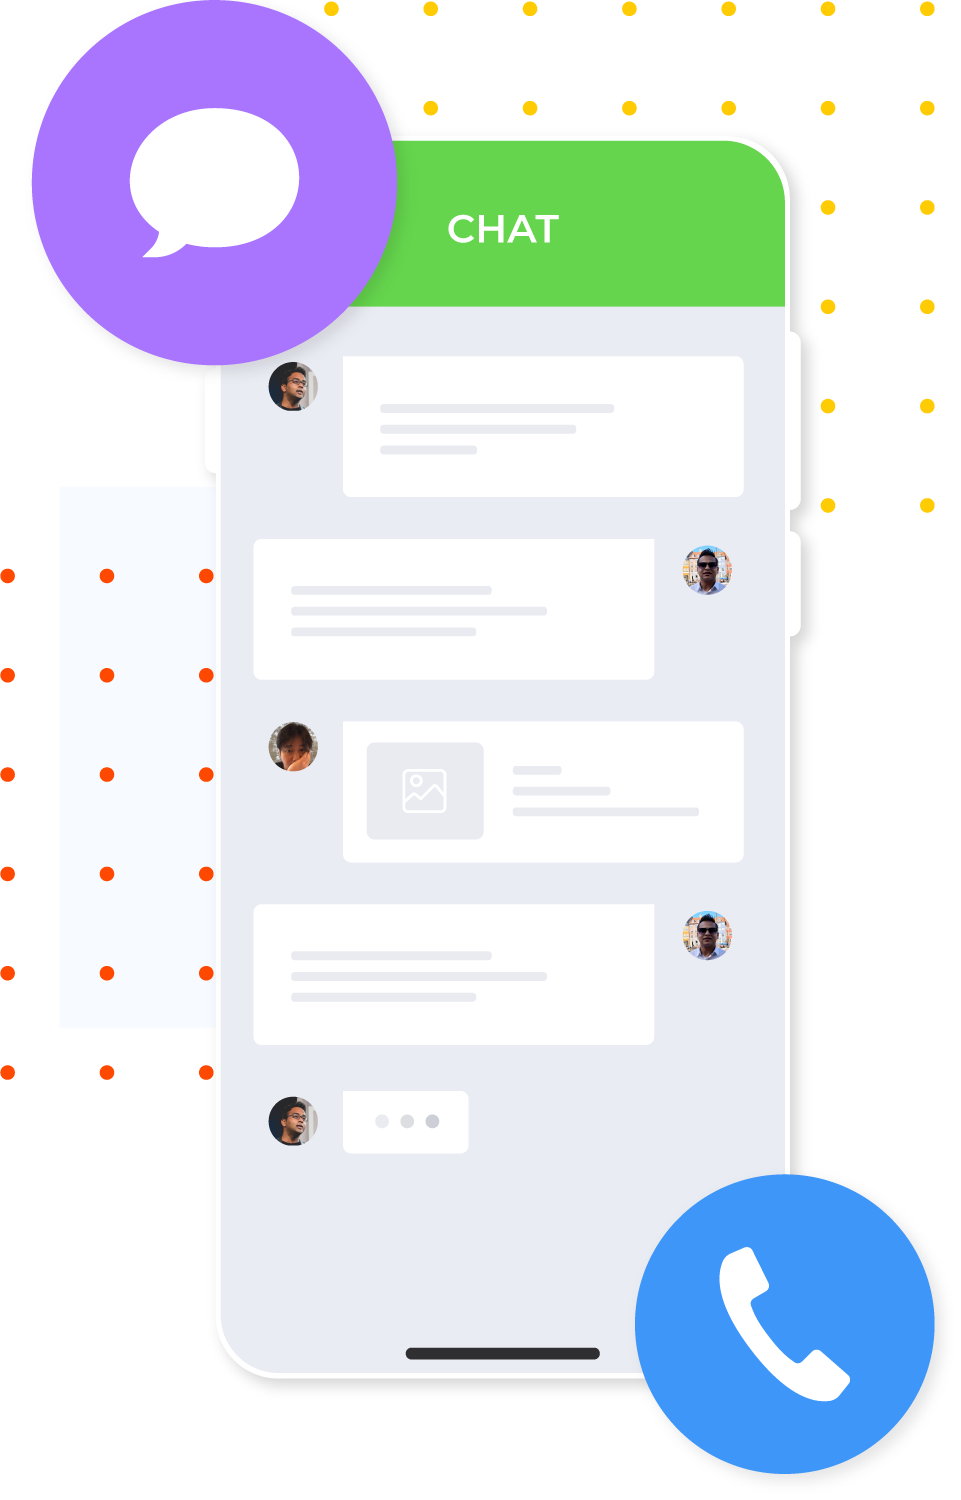 Simplified illustration of driver app chat feature.